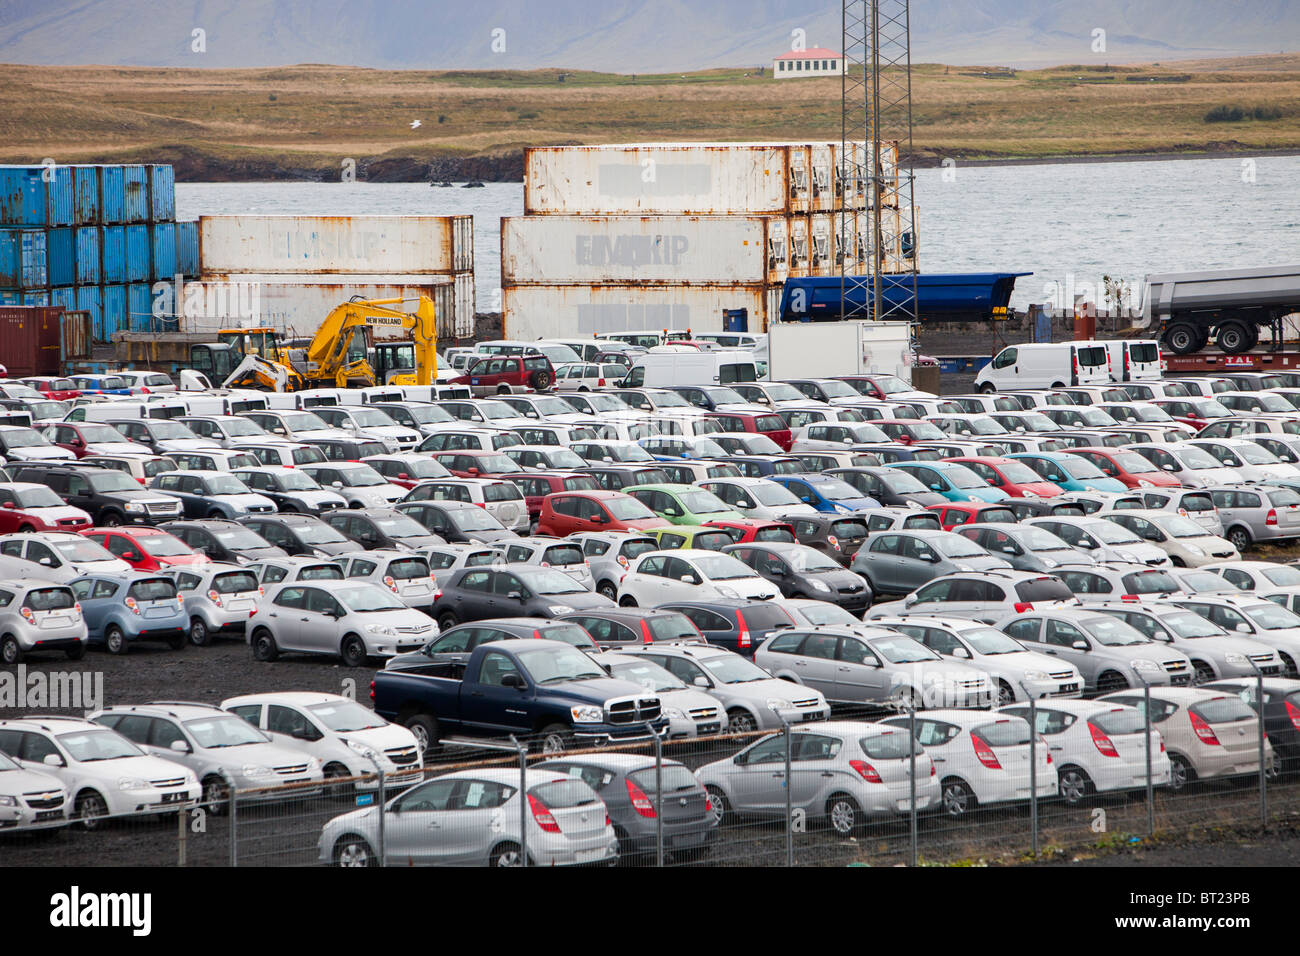 Cars Imported Into Iceland At A Container Port In Reykjavik Stock